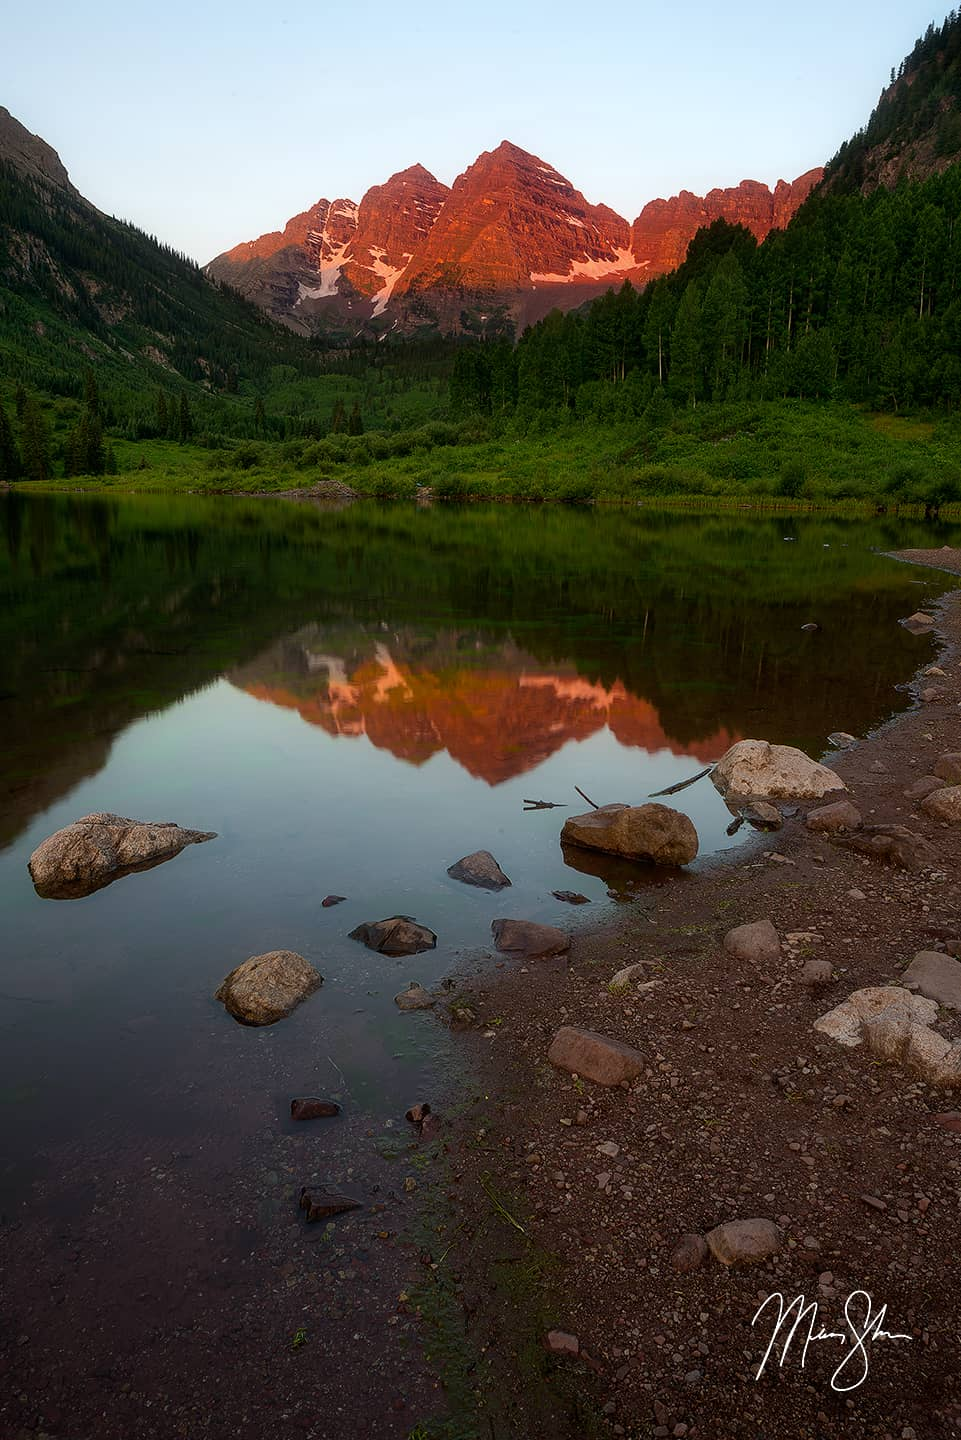 Open edition fine art print of Maroon Bells Summer Sunrise Reflection from Mickey Shannon Photography. Location: Maroon Lake, Aspen, Colorado